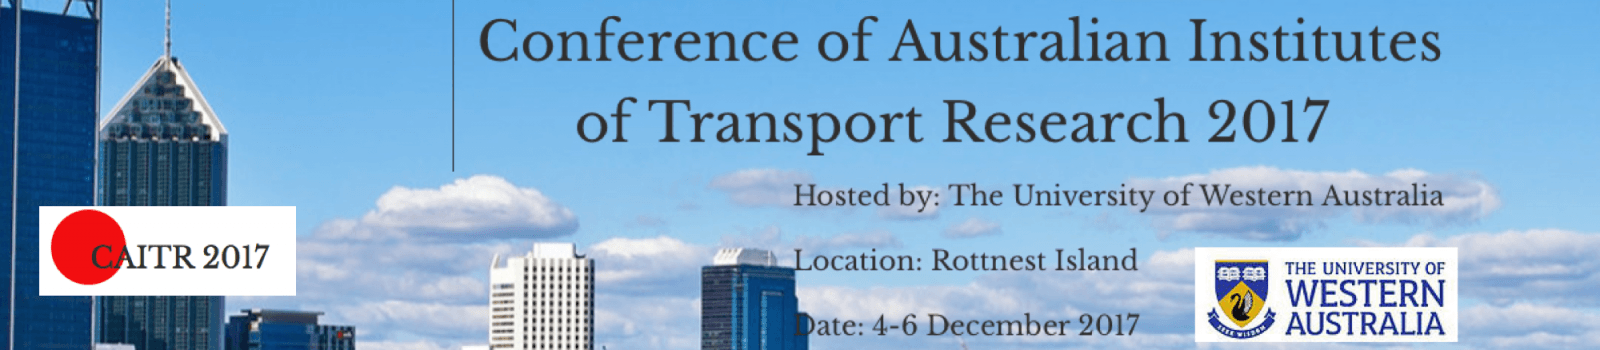 The Conference of Australian Institutes of Transport Research (CAITR)